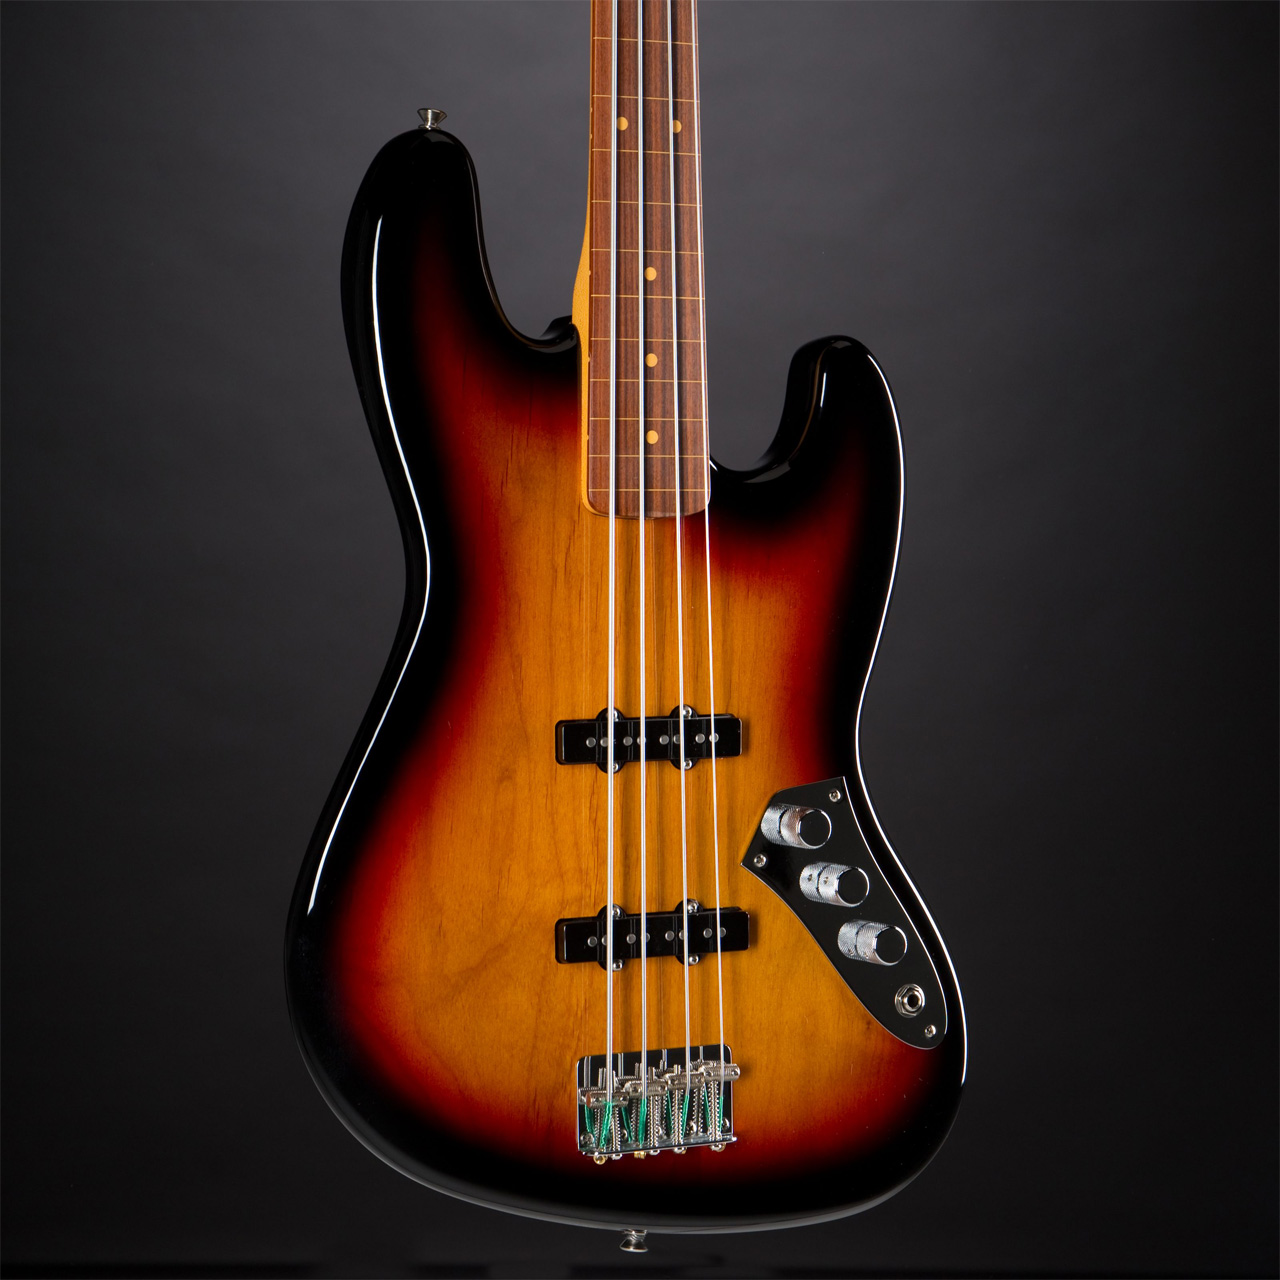 FENDER Jaco Pastorius Jazz Bass 3-Color Sunburst Korpus